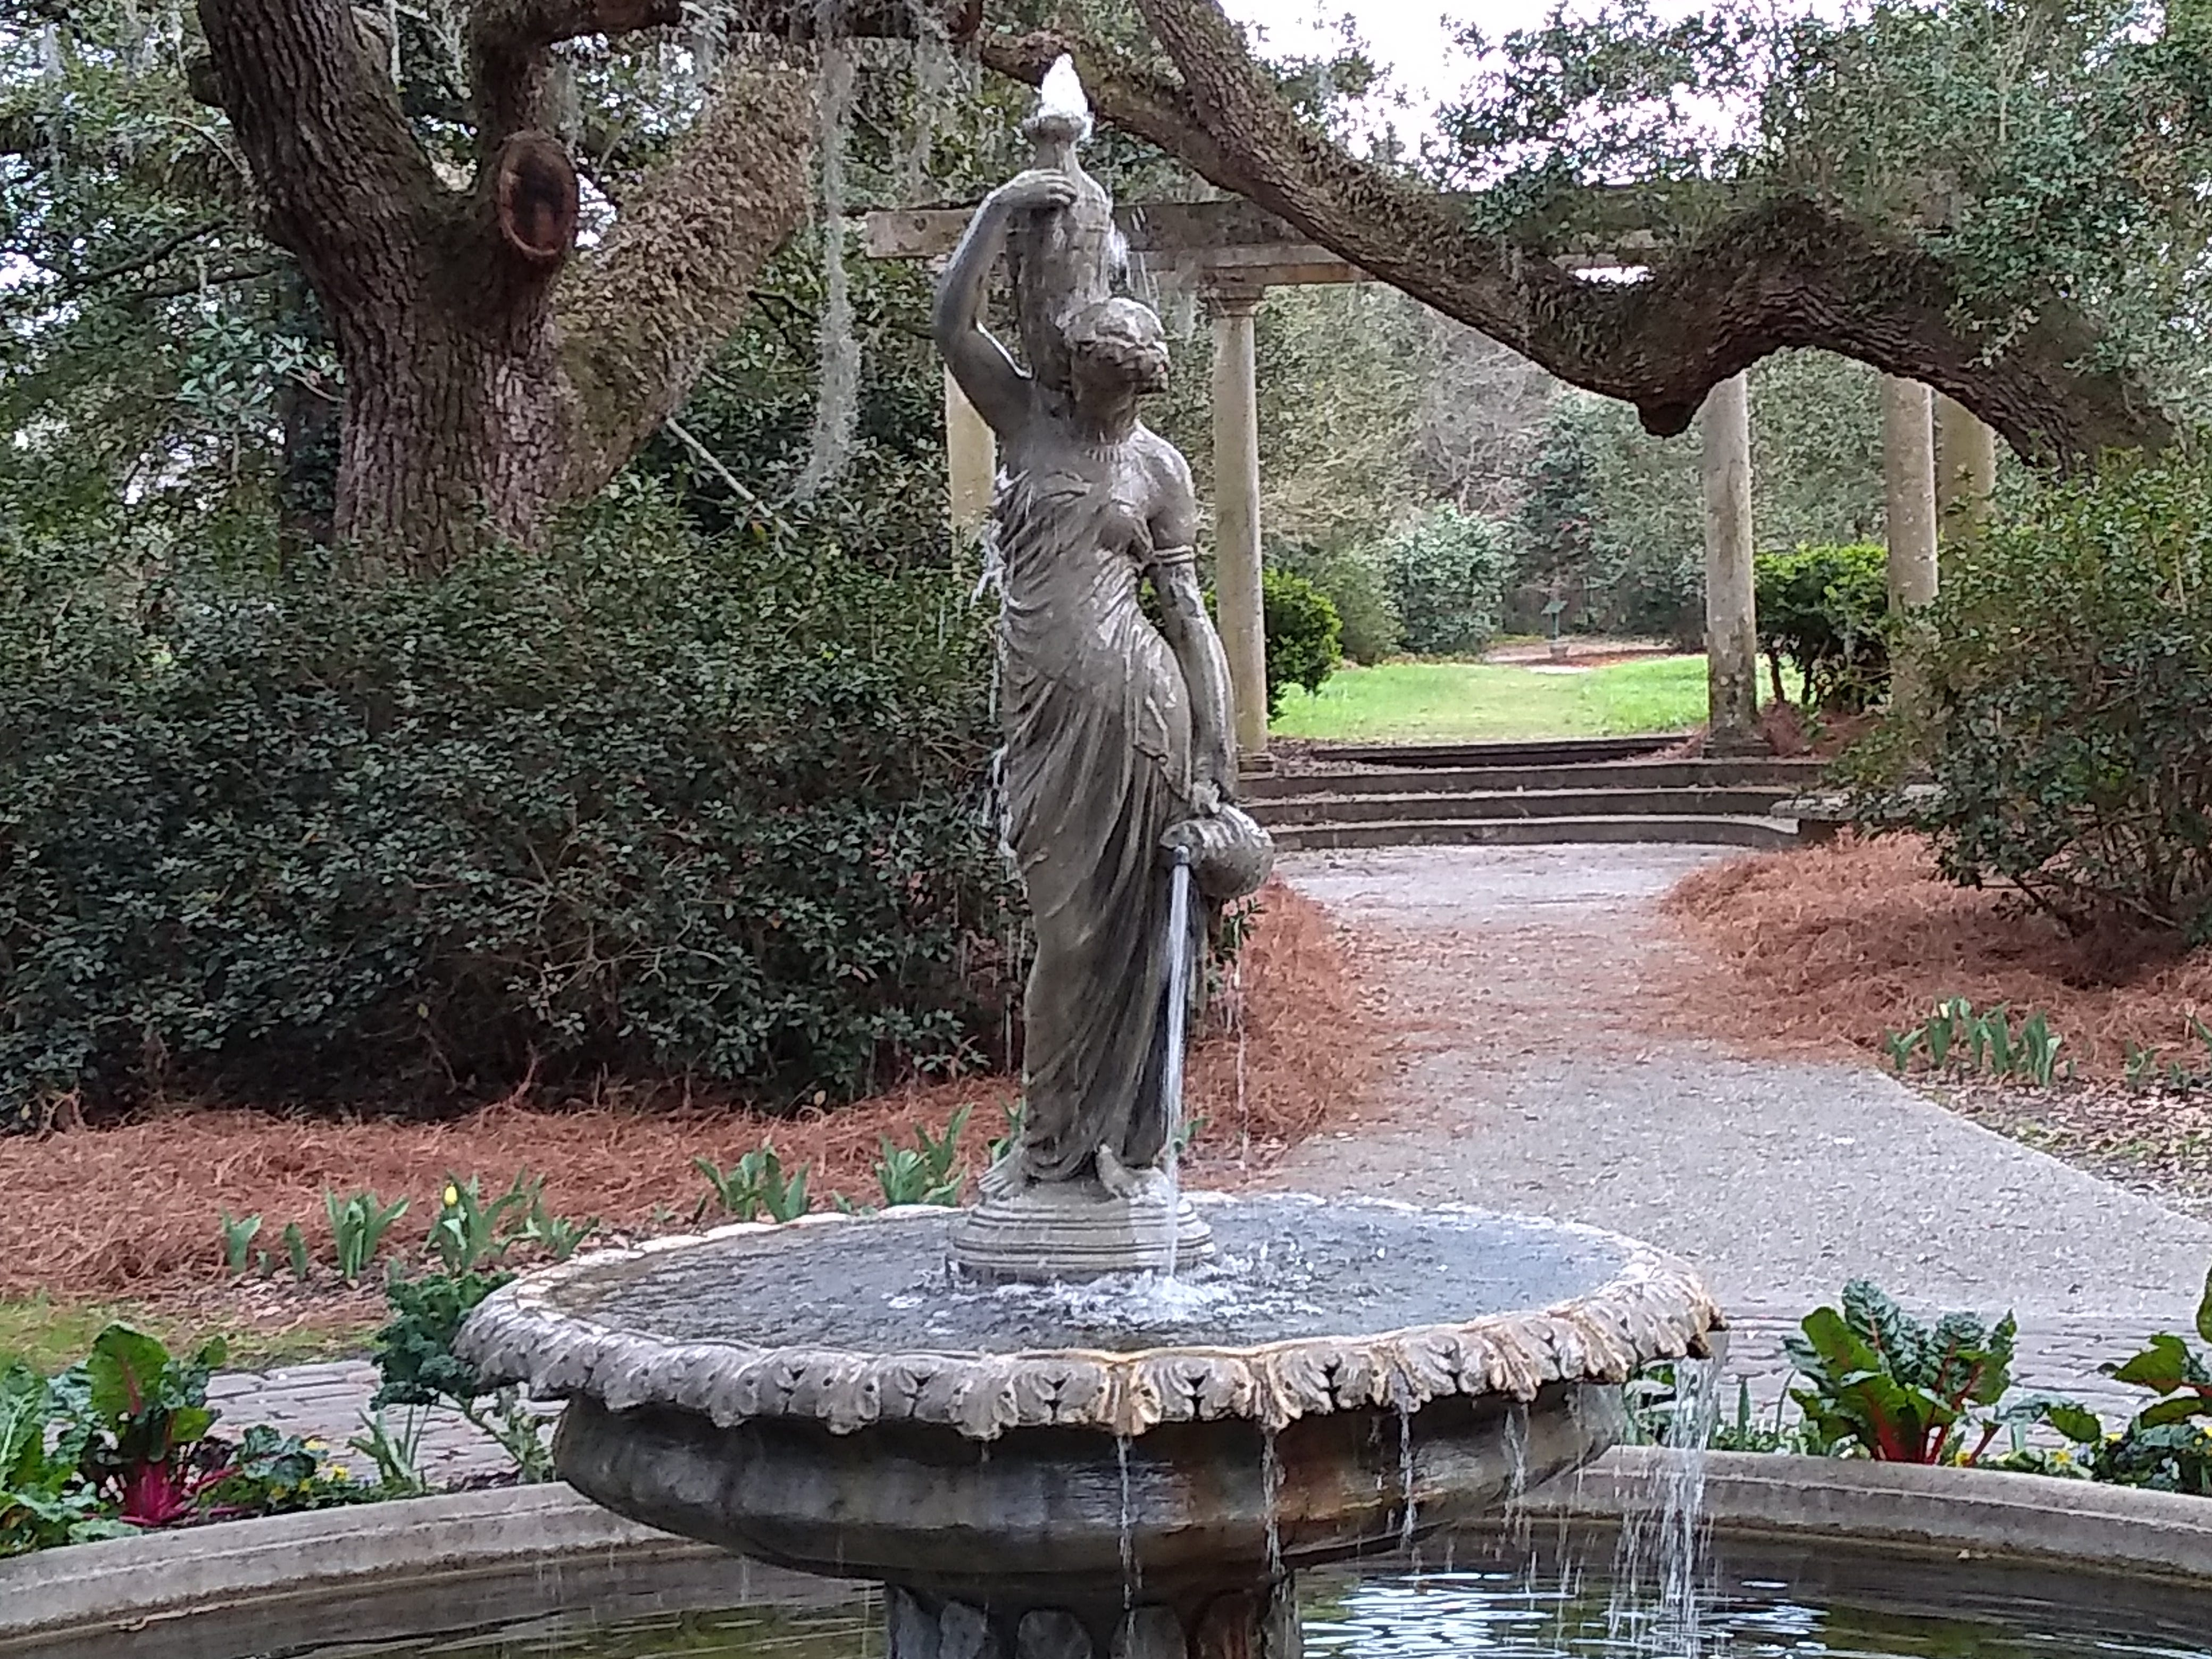 "You've probably seen Arlie Gardens on TV. Wilmington is a popular place for filming movies and series. ""Dawson's Creek"" and ""One Tree Hill"" were made in Wilmington; key episodes in both were filmed at Arlie Gardens."